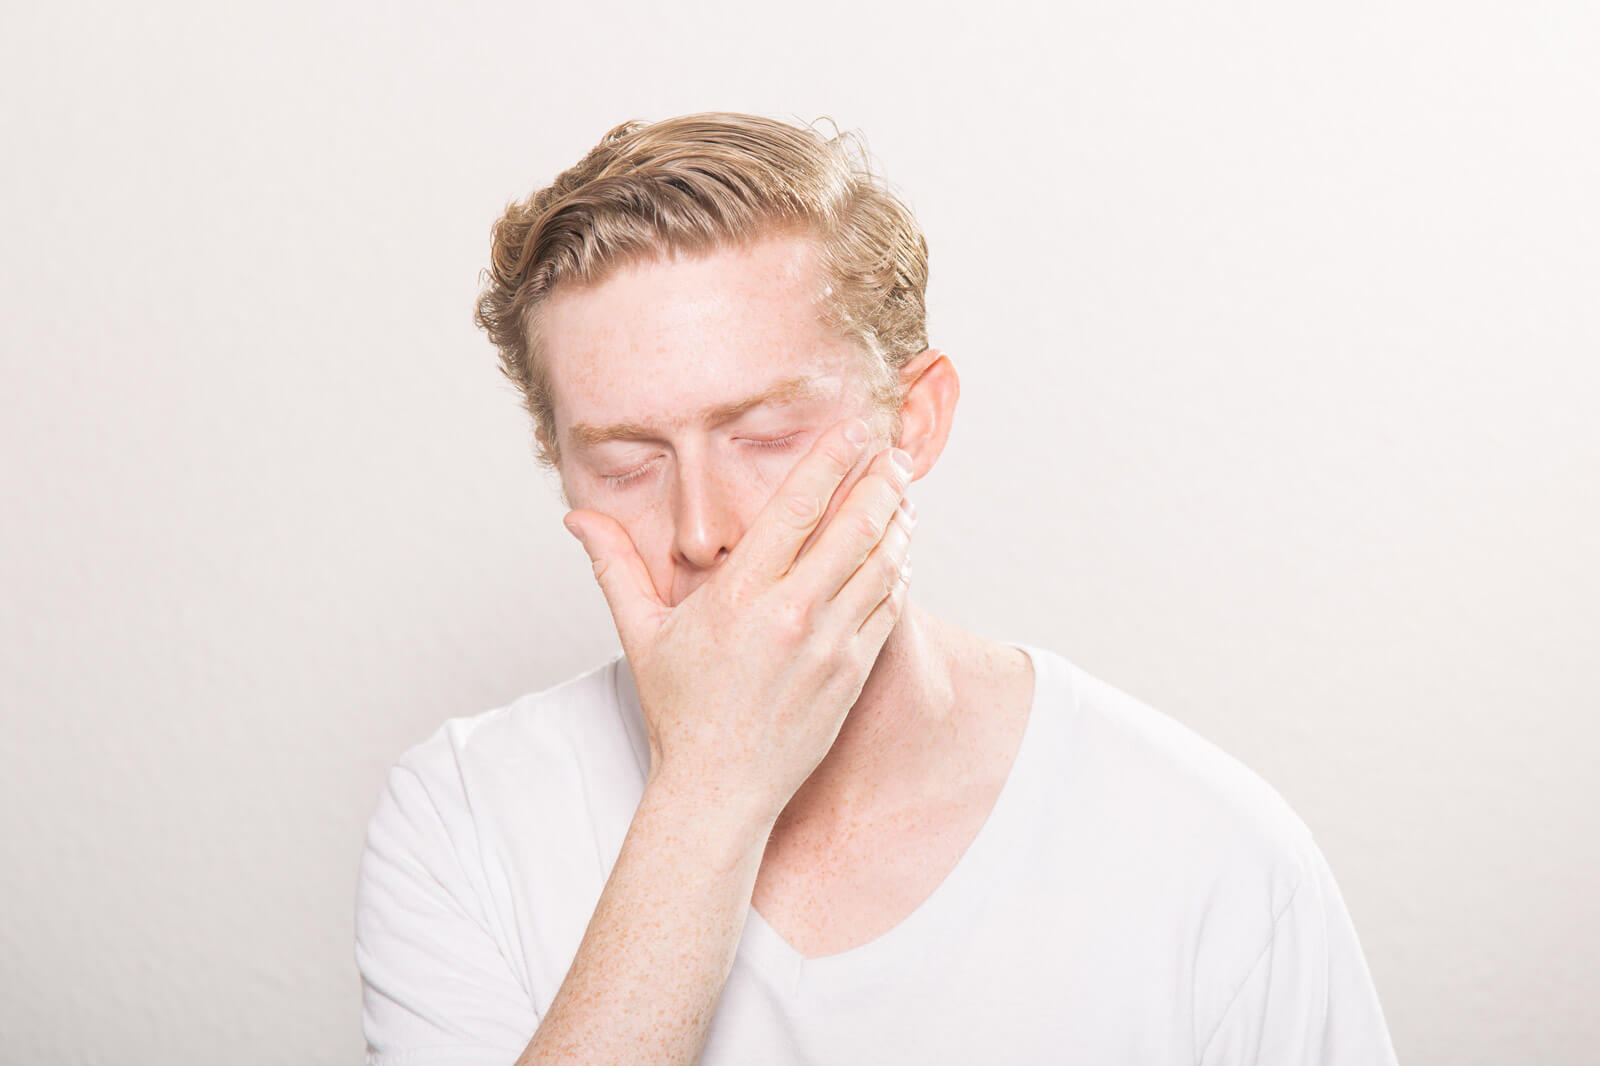 A man yawning because of extreme fatigue. Healthy sleep patterns can prevent you feeling tired and reduce anxiety.